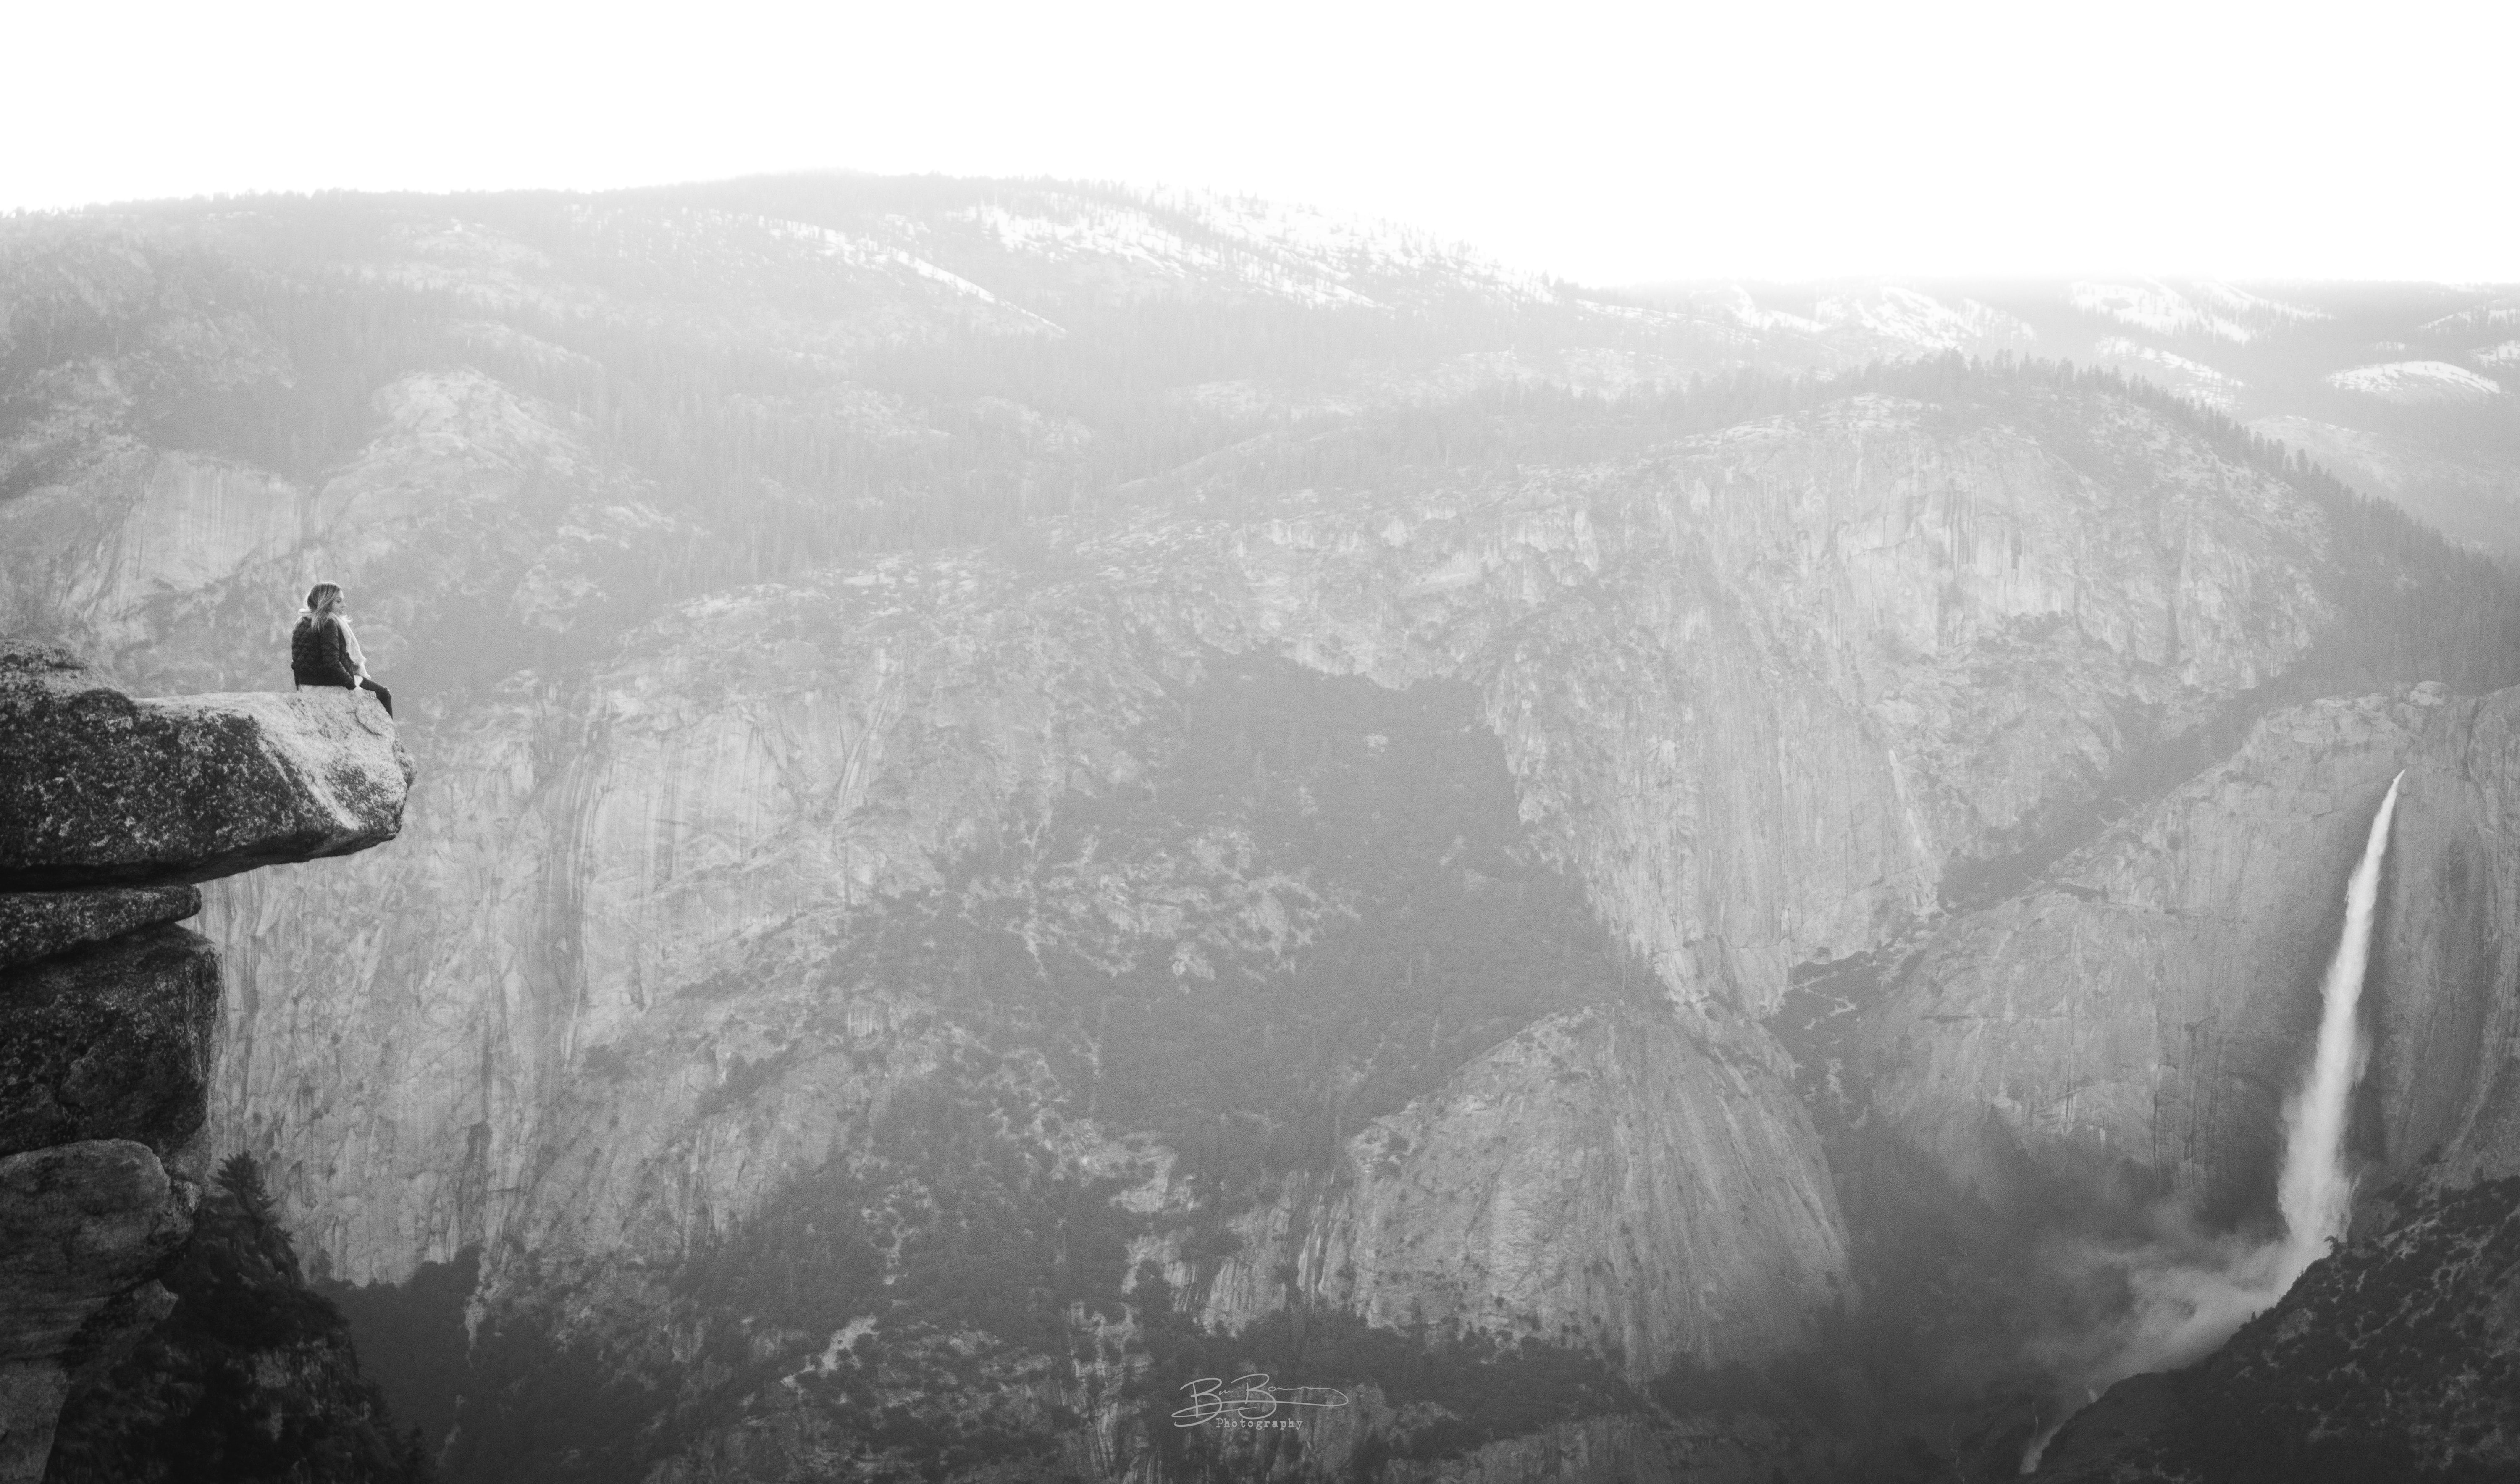 grayscale photography of person sitting on rock and waterfalls during daytime